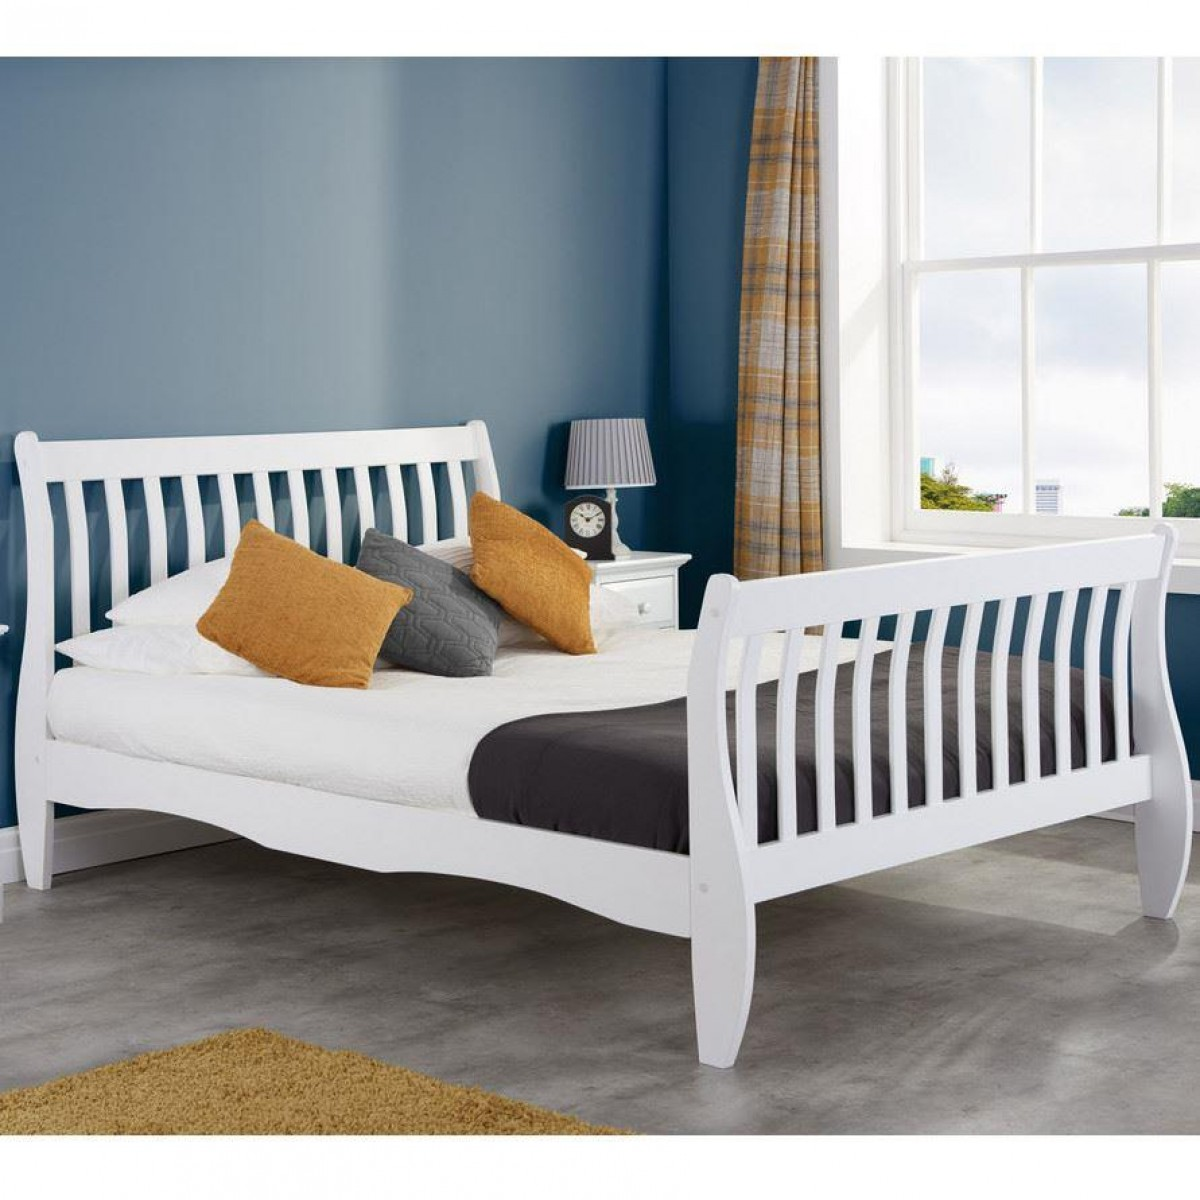 Belford White Wooden Sleigh Bed